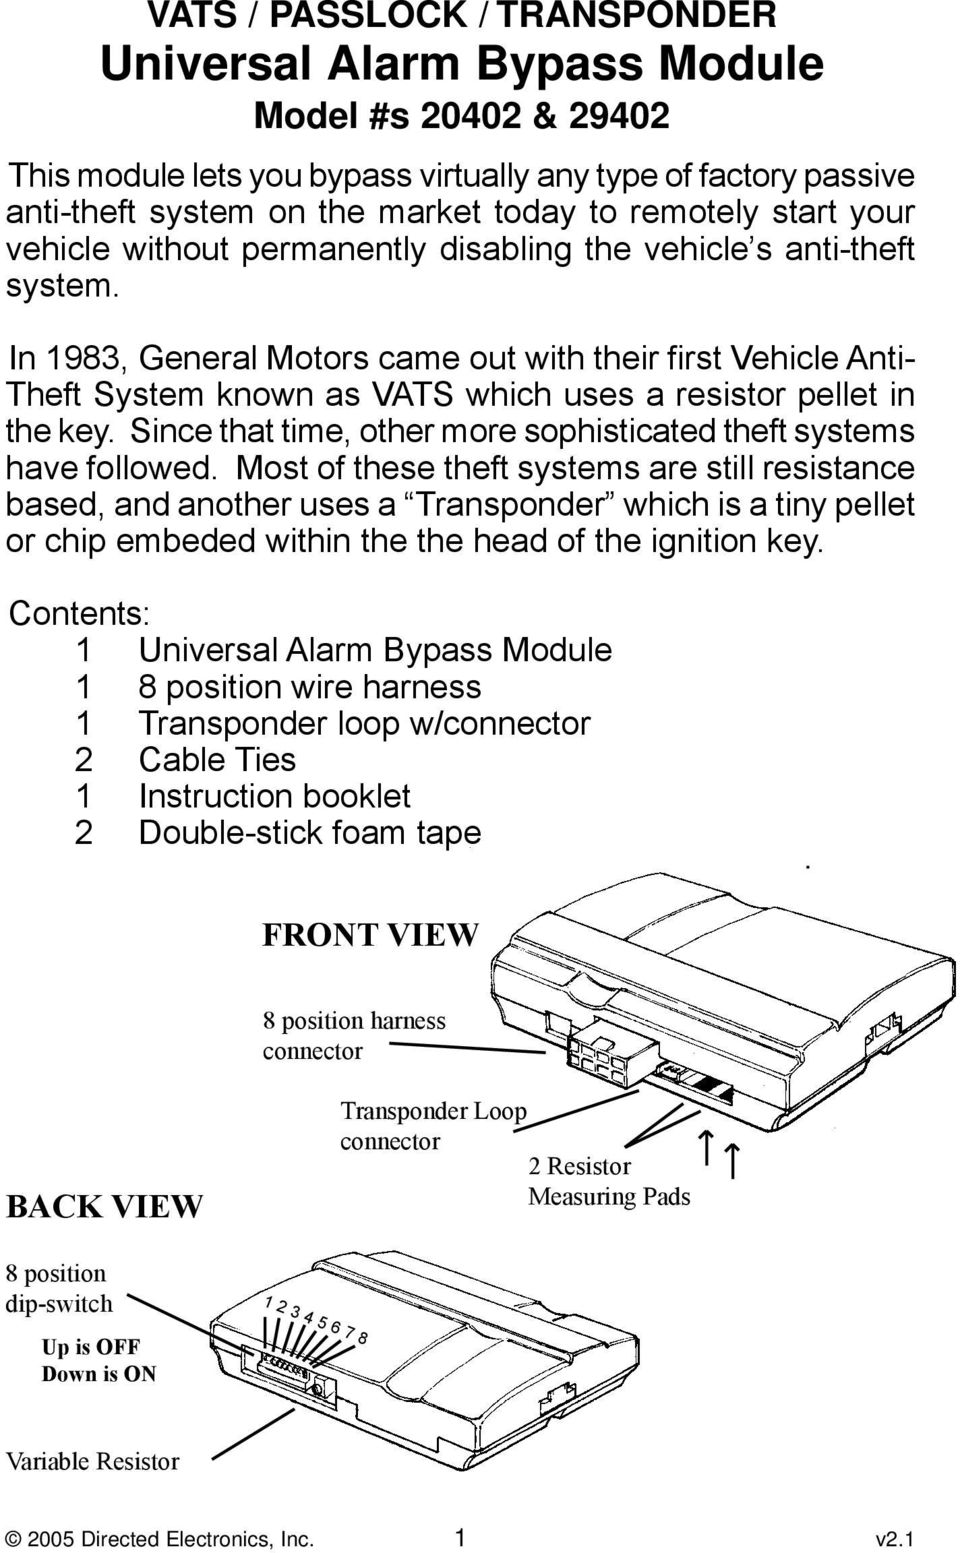 hight resolution of in 1983 general motors came out with their first vehicle anti theft system known